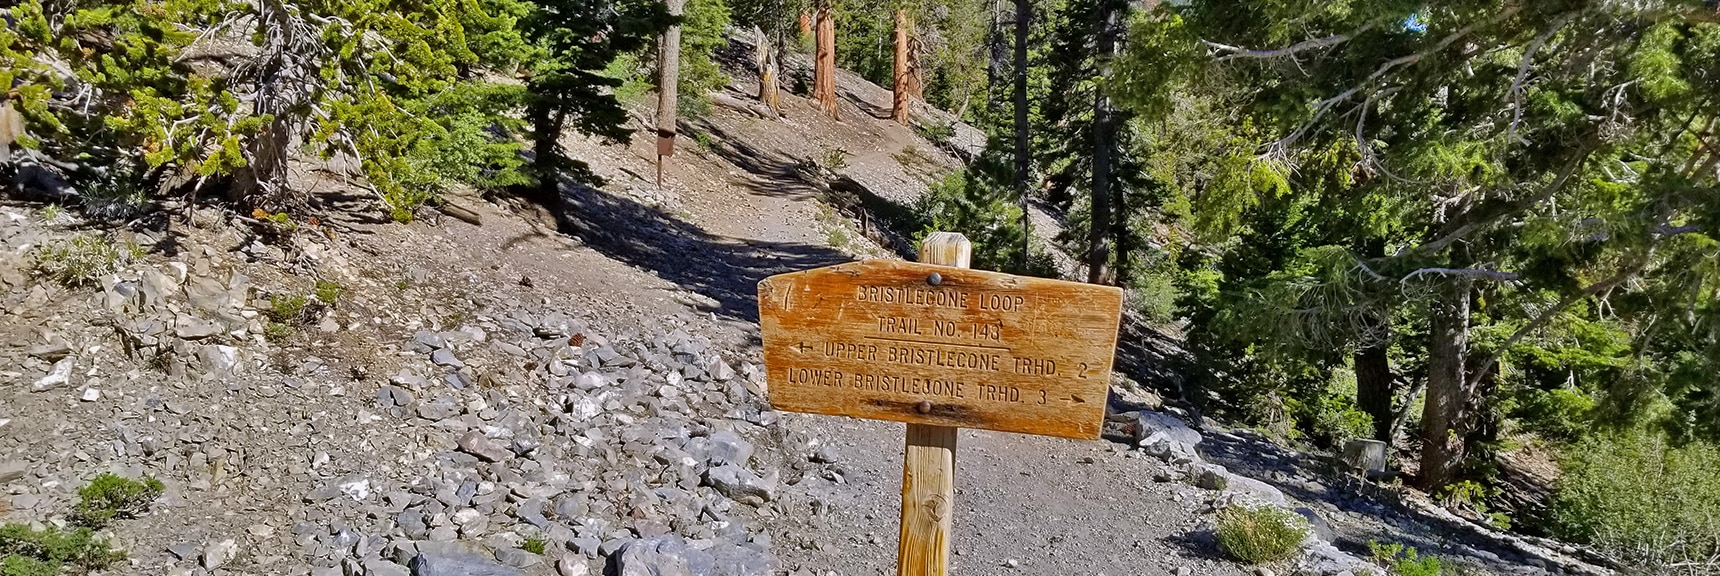 Junction of Bristlecone Pine Trail and Bonanza Trail in Lee Canyon | Base of McFarland Peak via Bristlecone Pine Trail and Bonanza Trail | Lee Canyon | Spring Mountains, Nevada